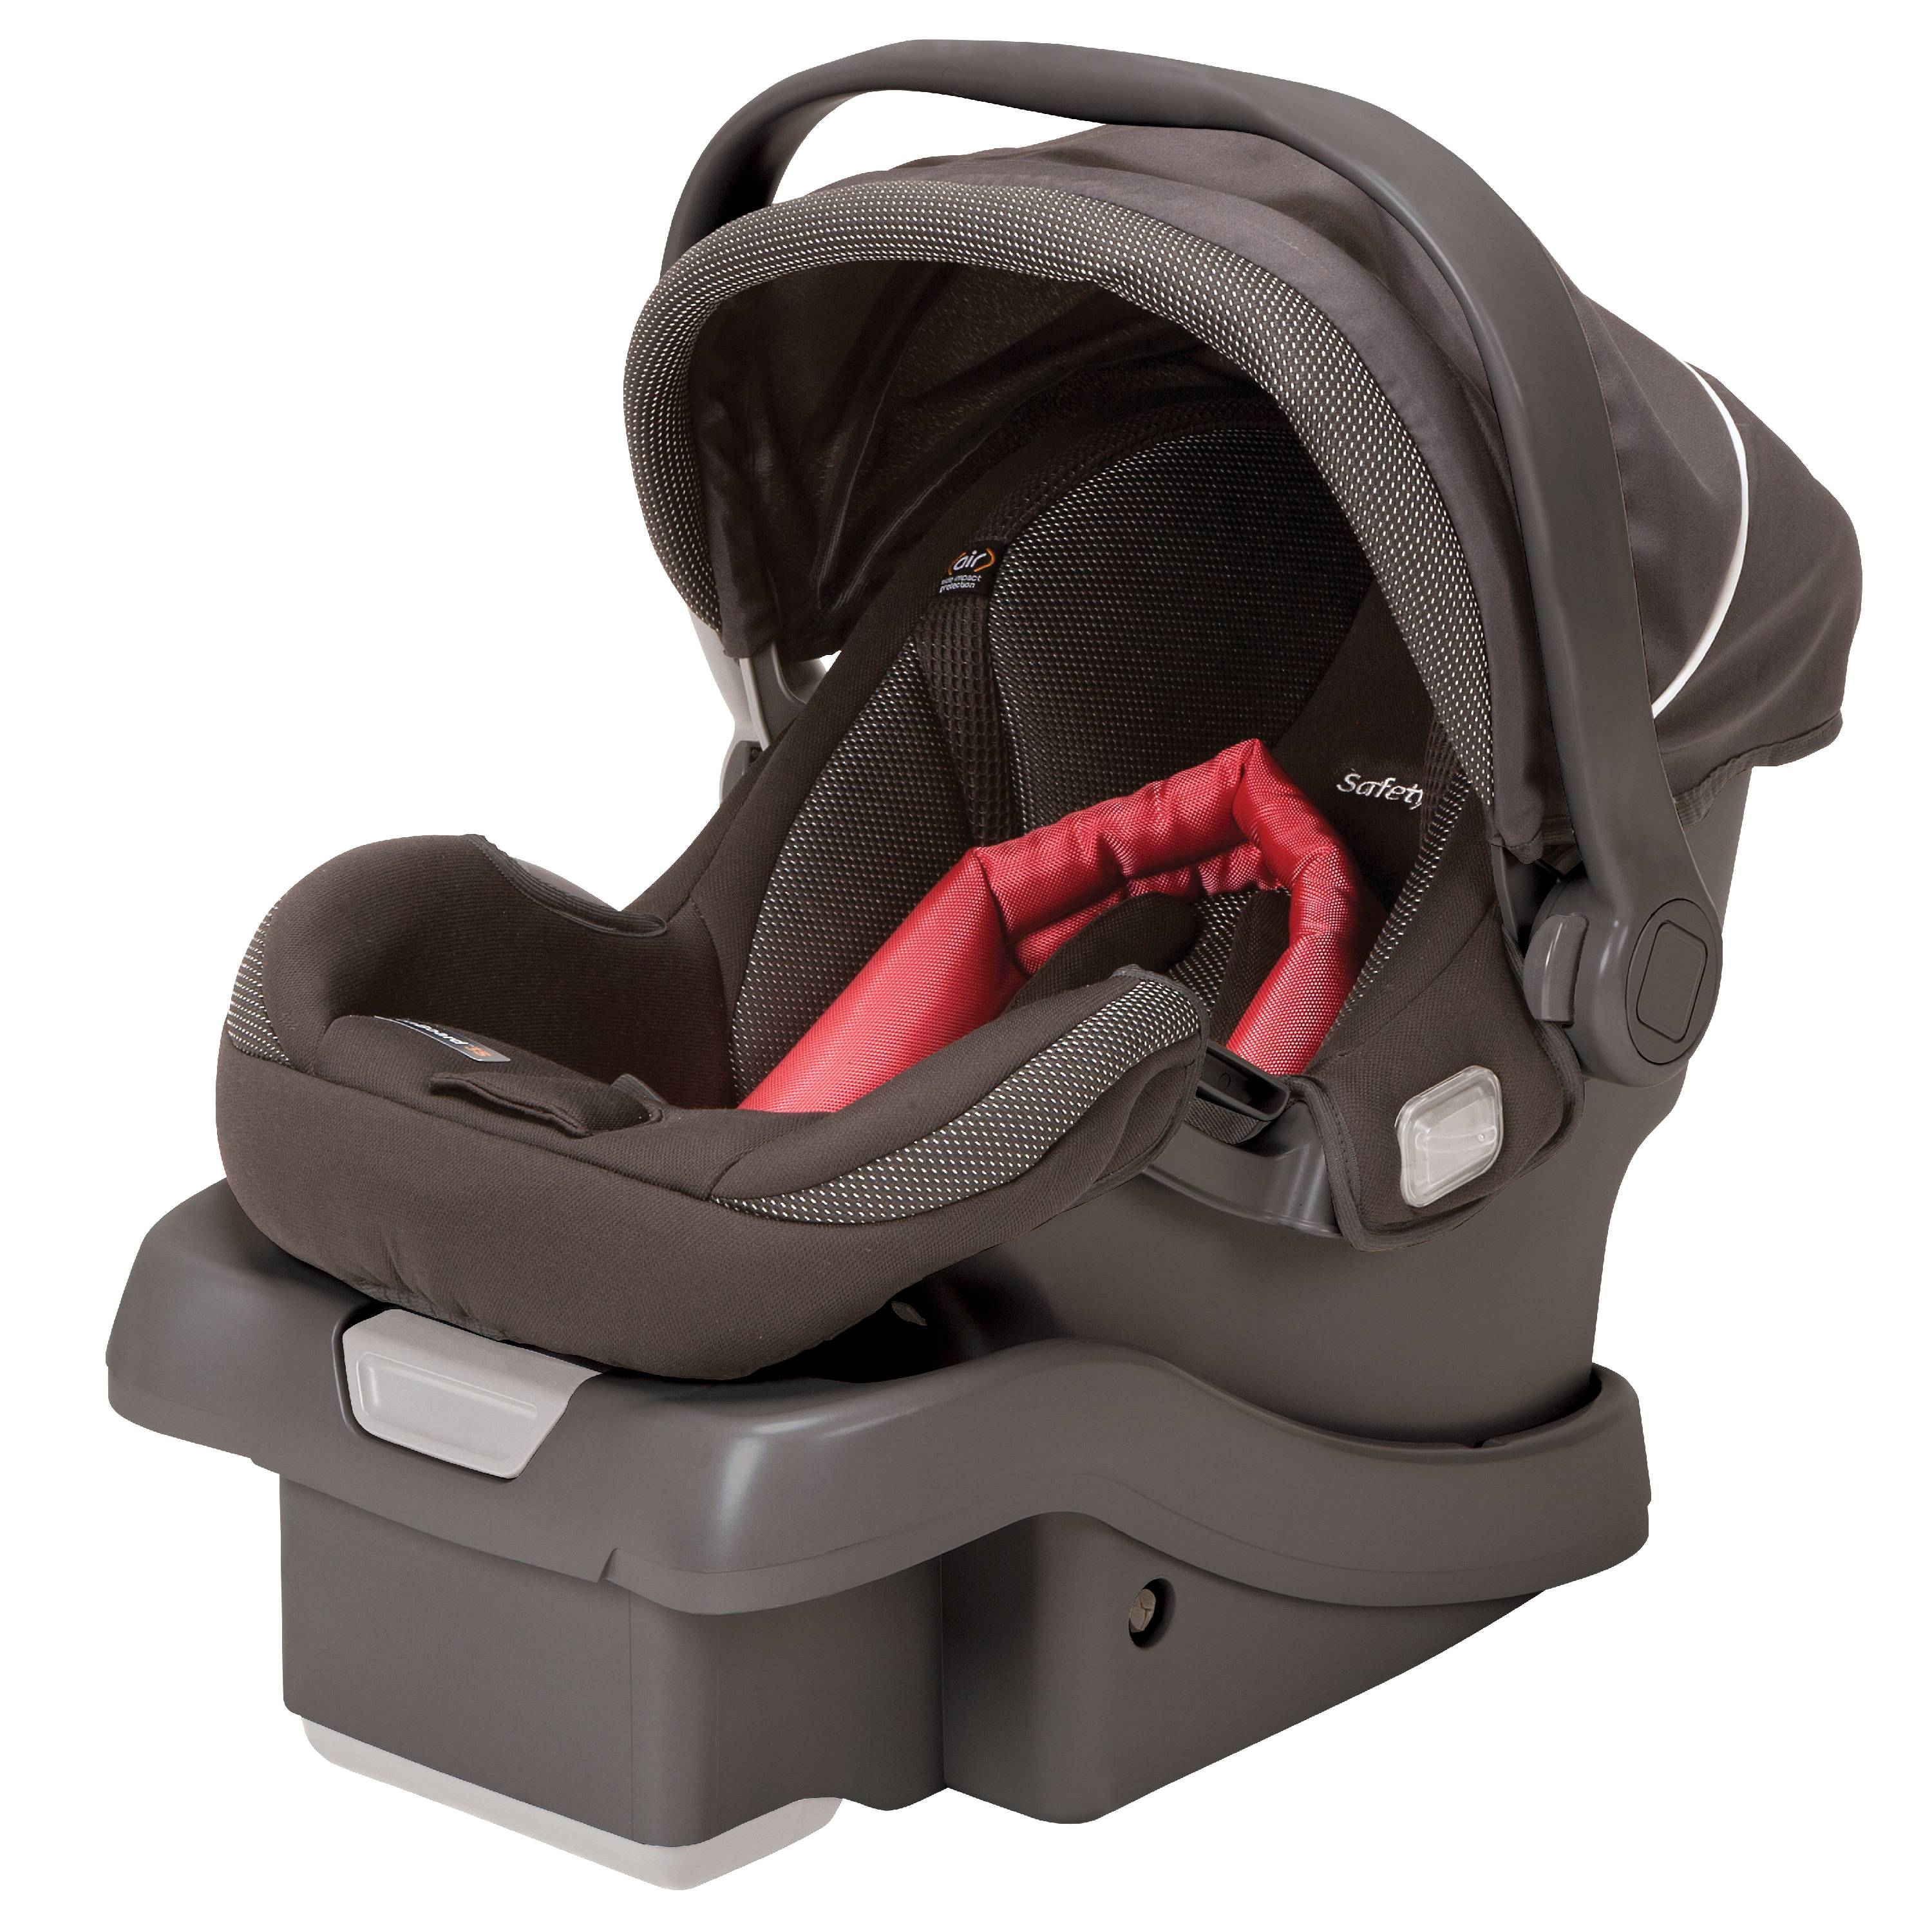 Safety 1st onBoard35 Air Infant Car Seat, Corabelle